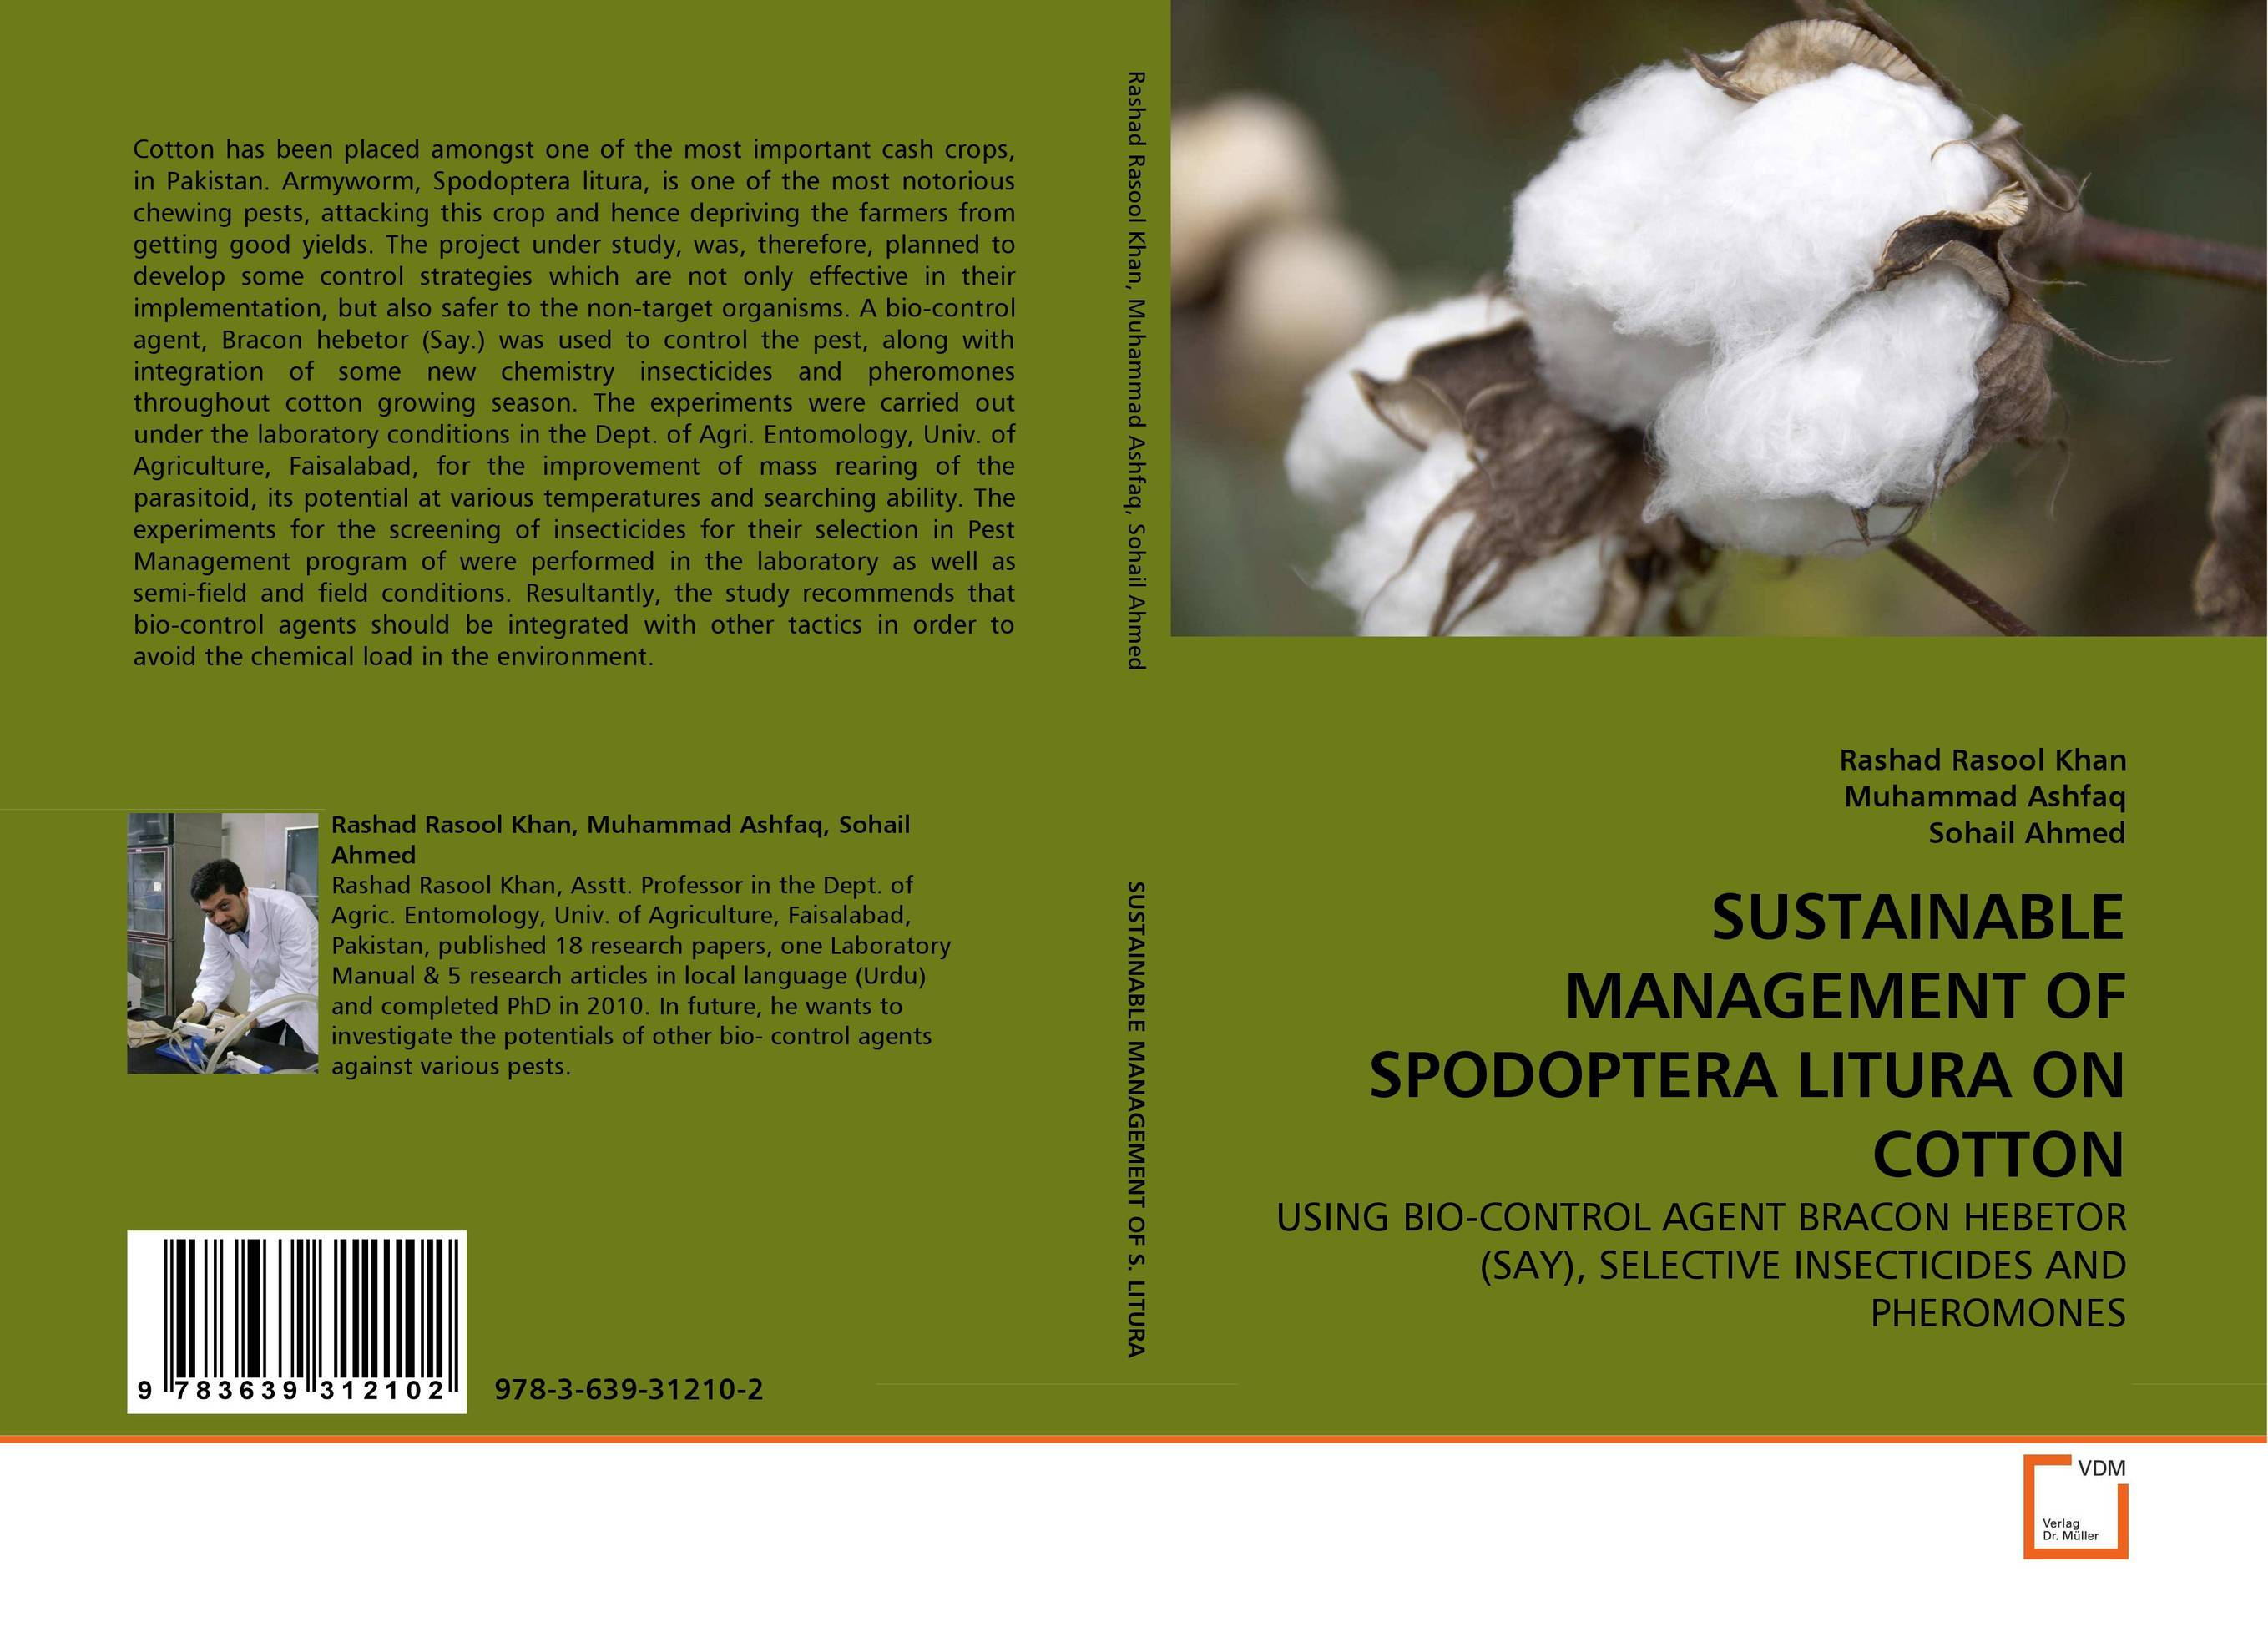 SUSTAINABLE MANAGEMENT OF SPODOPTERA LITURA ON COTTON